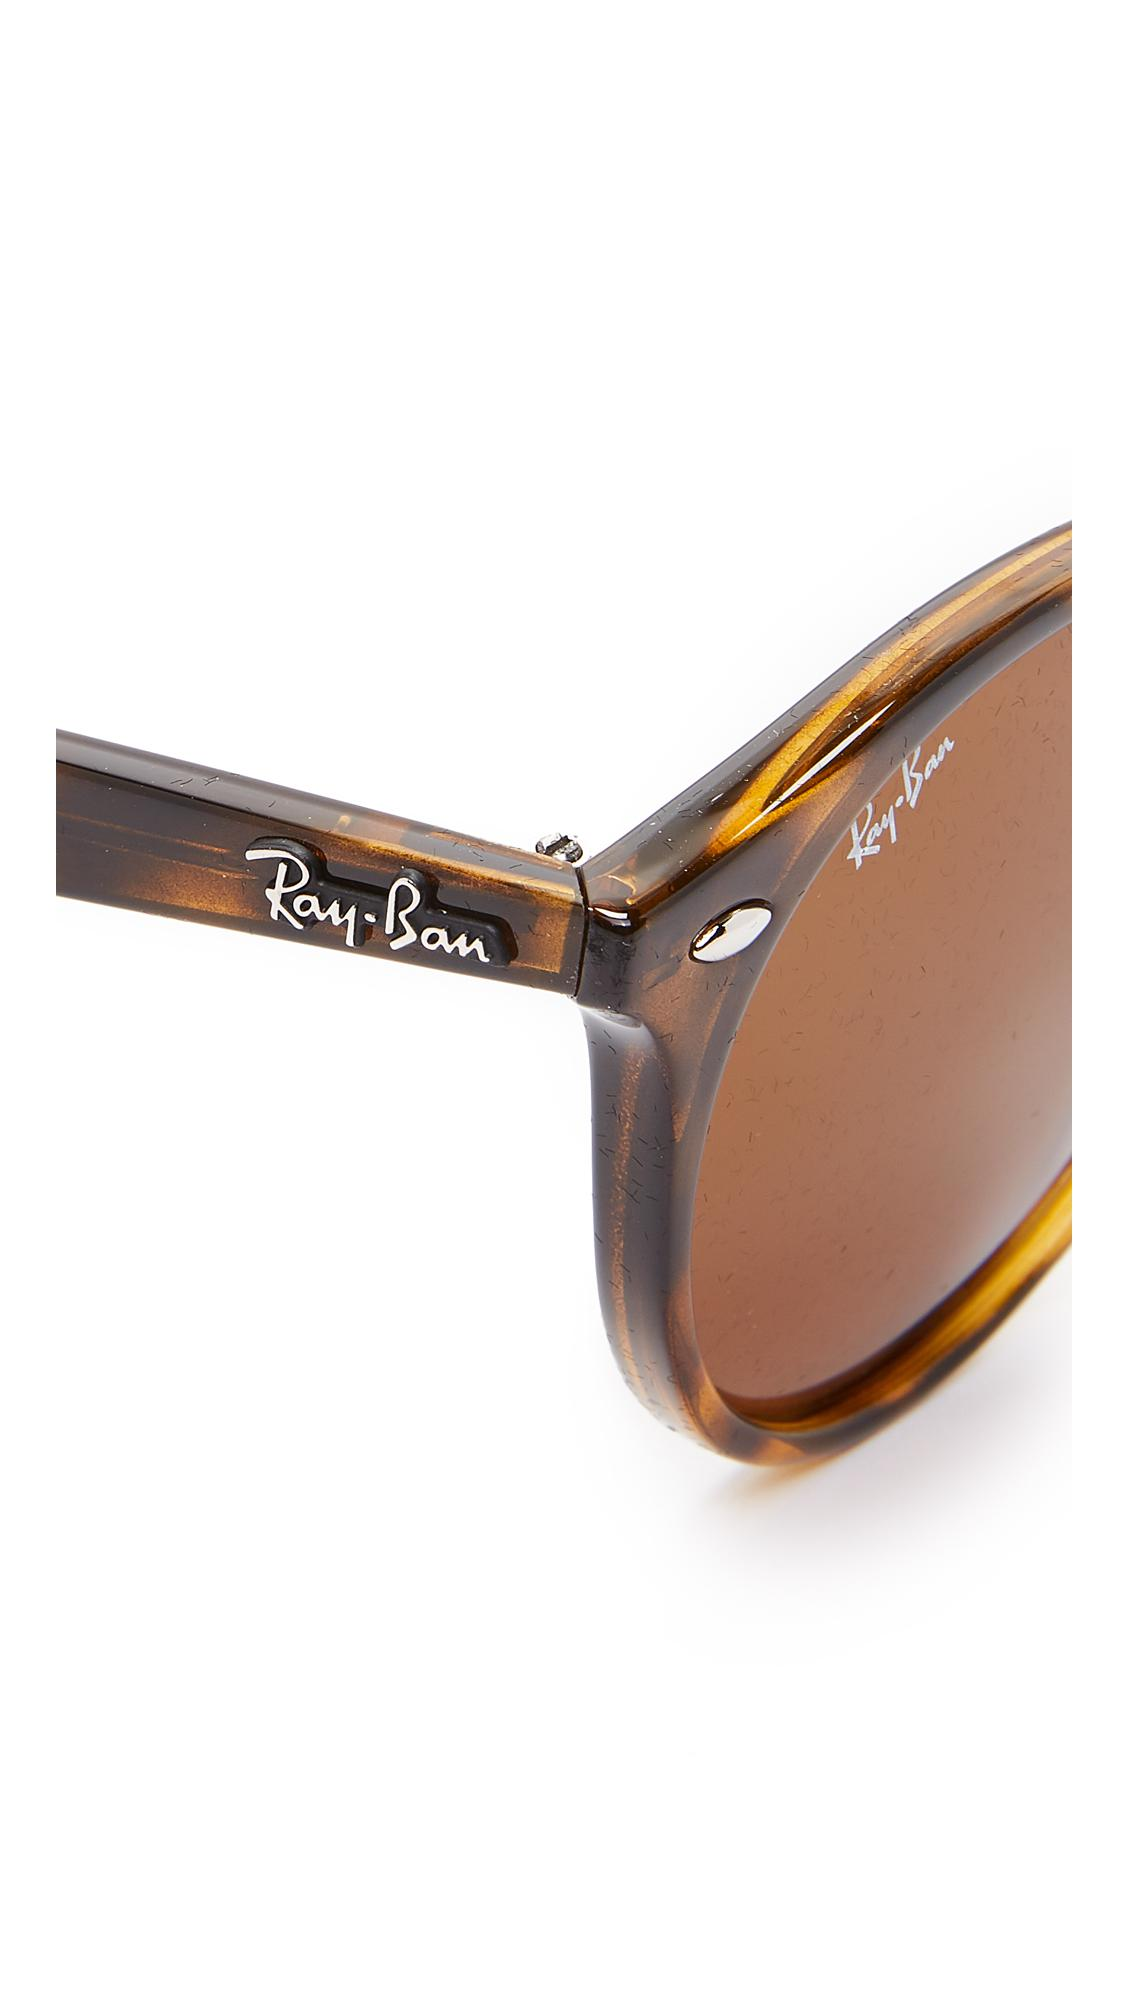 Ray-Ban Round Sunglasses in Brown